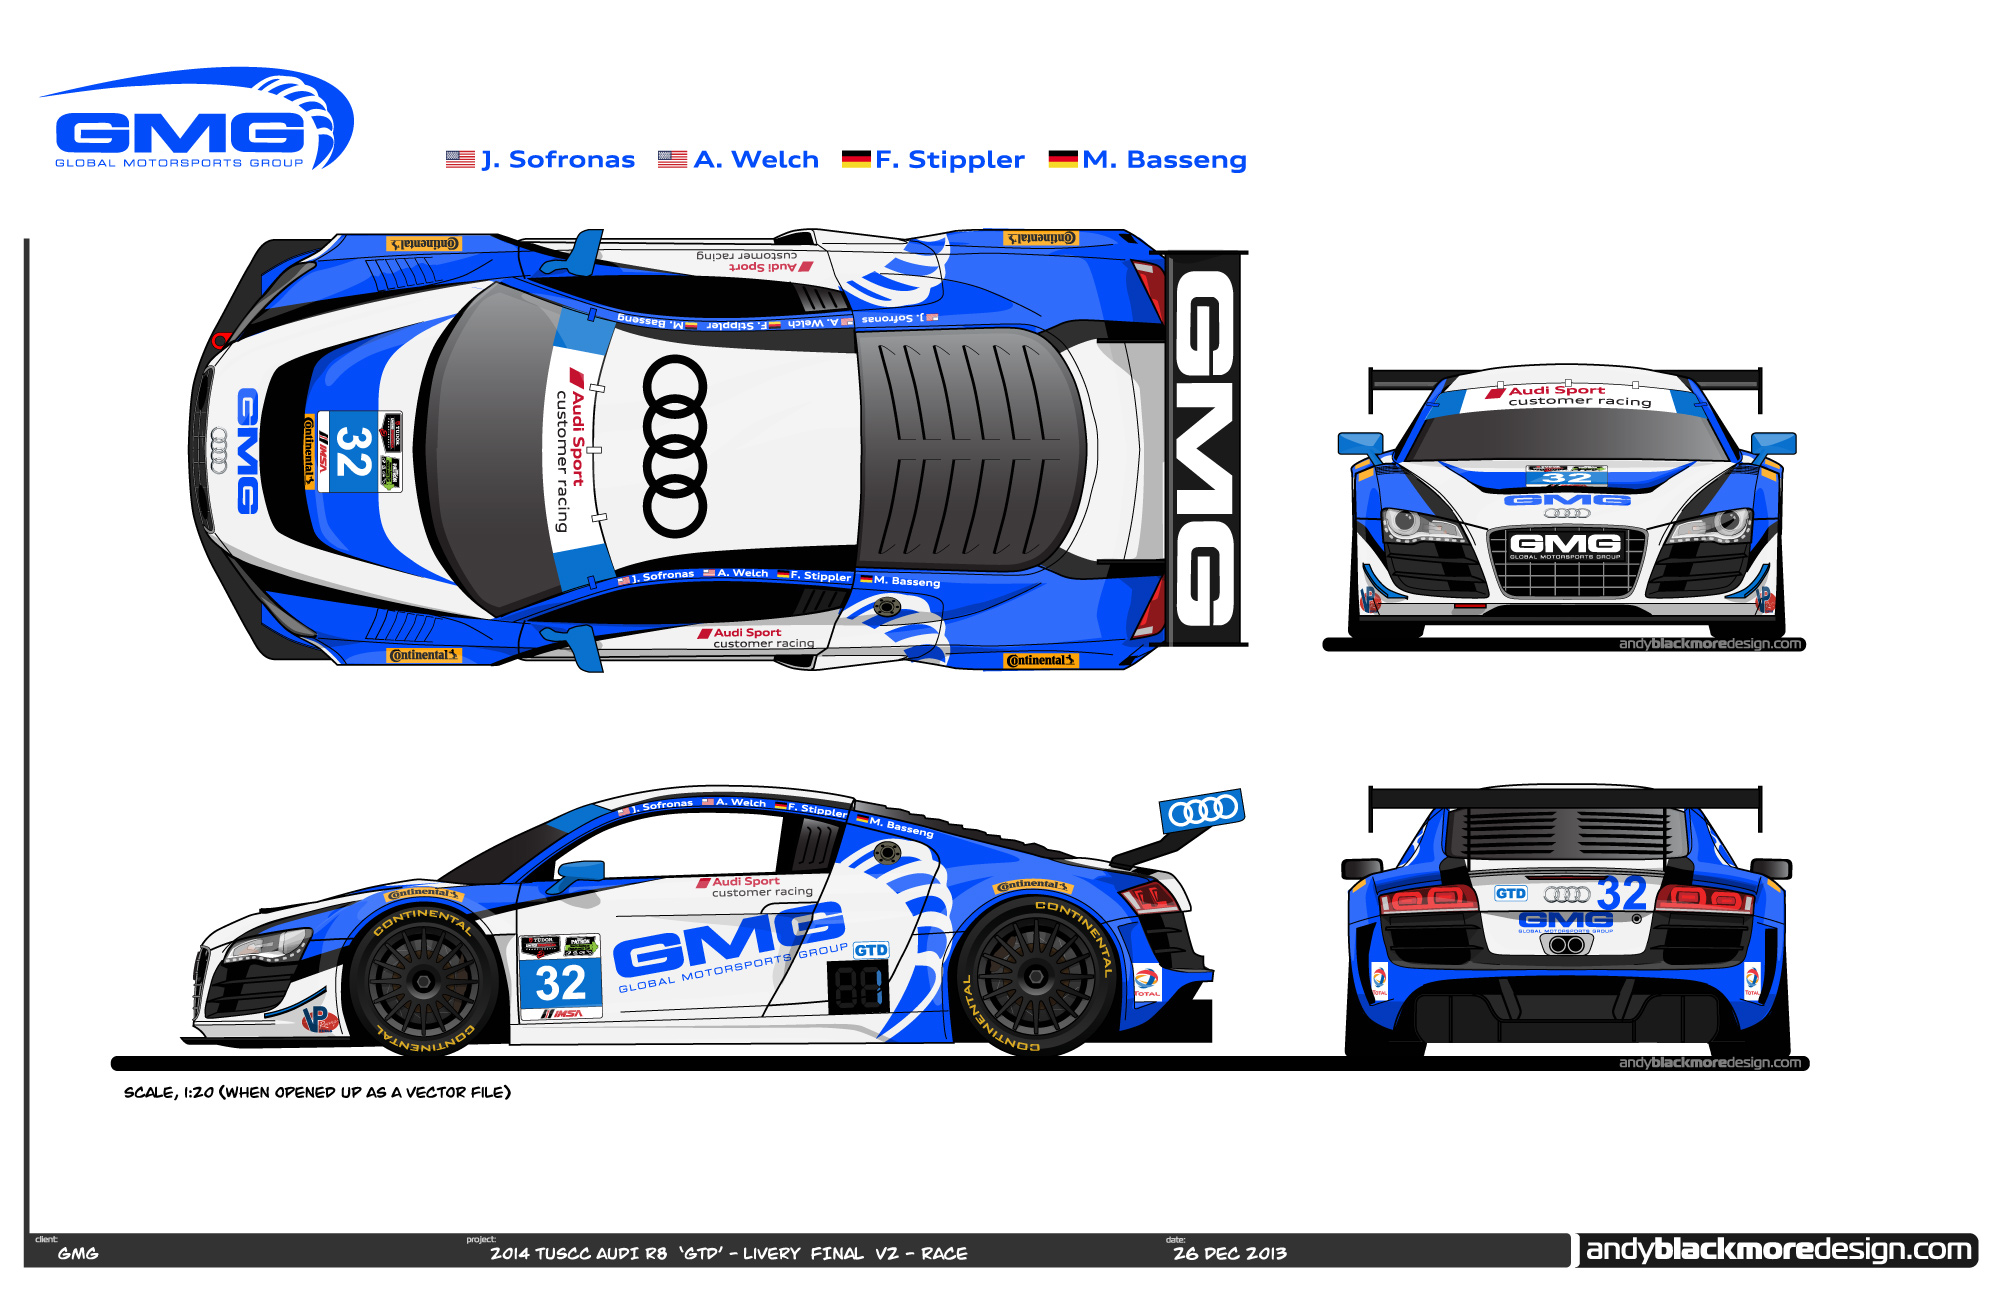 daytona 24 hour audi r8 lms gtd driver lineups liveries revealed. Black Bedroom Furniture Sets. Home Design Ideas